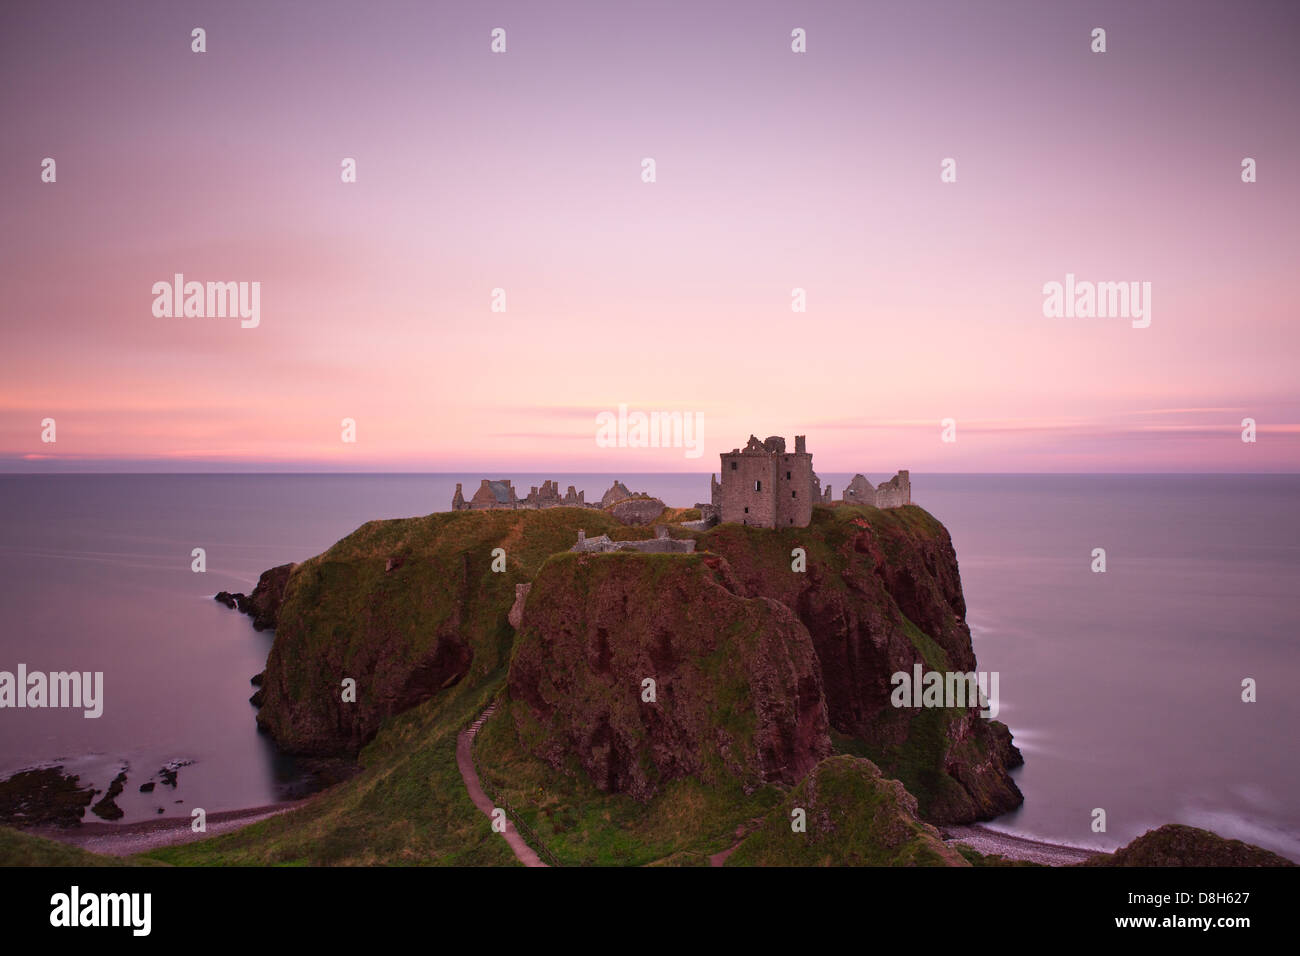 Dunnotar Castle at sunset, Scotland, United Kingdom - Stock Image